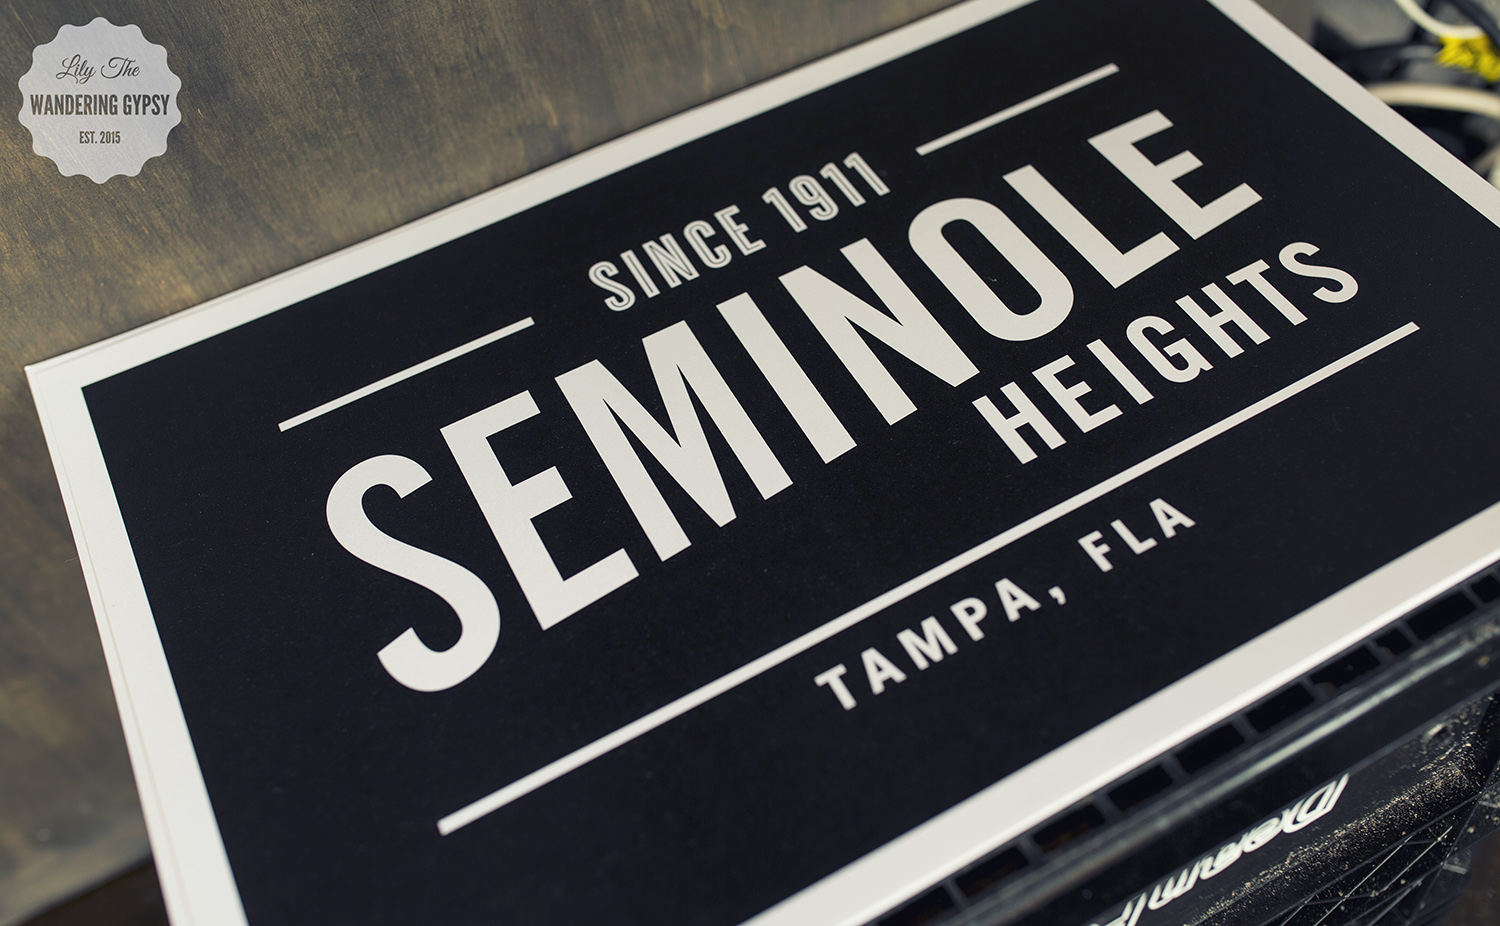 Seminole Heights - Tampa, FL